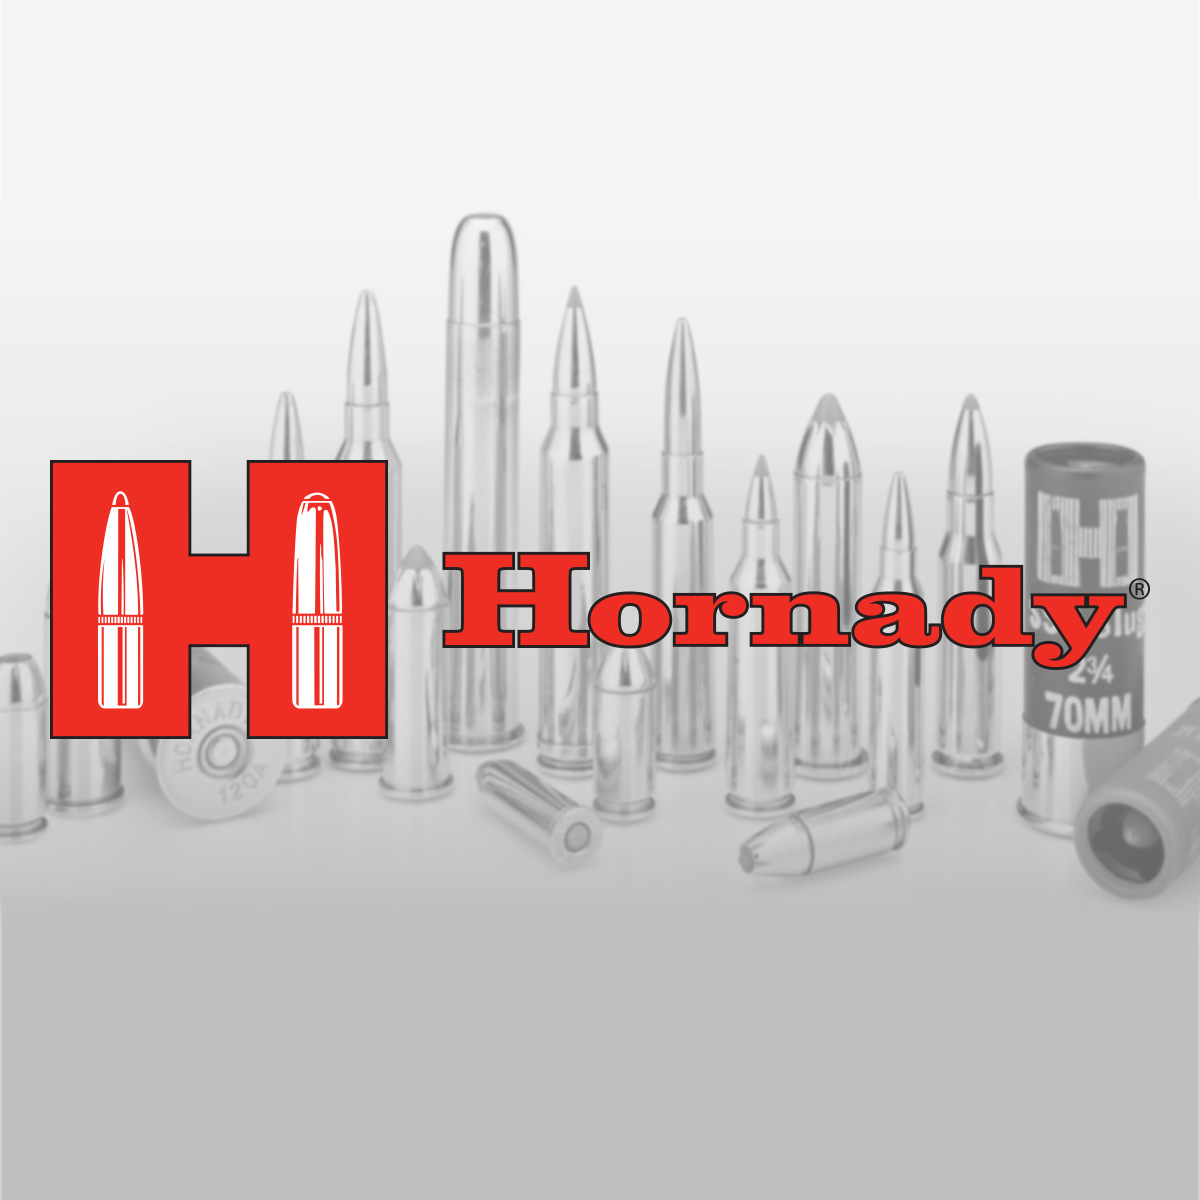 Ballistic Resources - Hornady Manufacturing, Inc